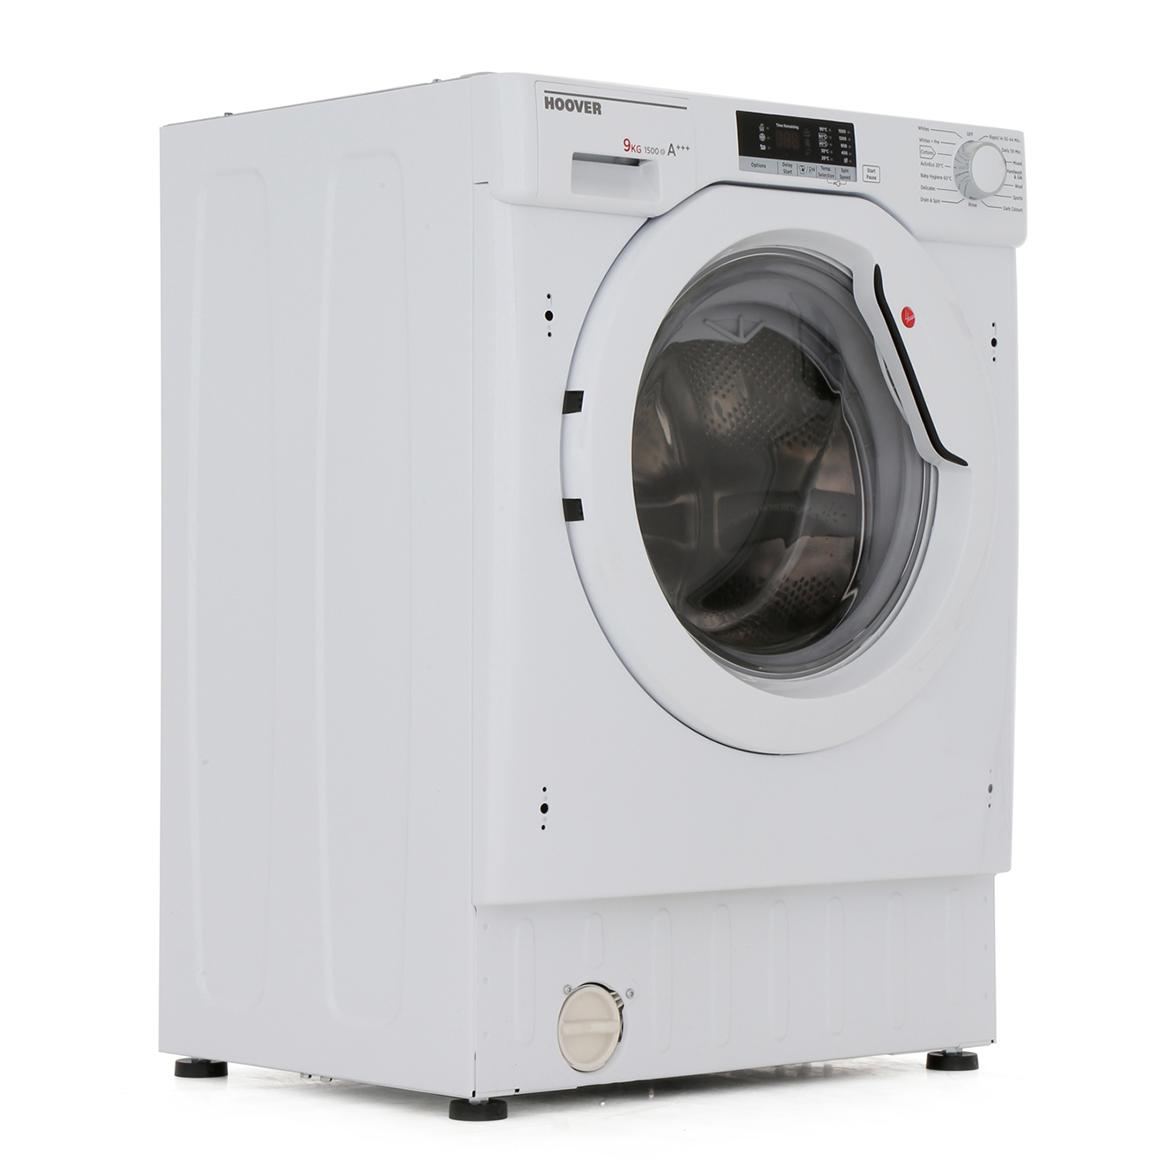 Hoover HBWM915D80 Integrated Washing Machine